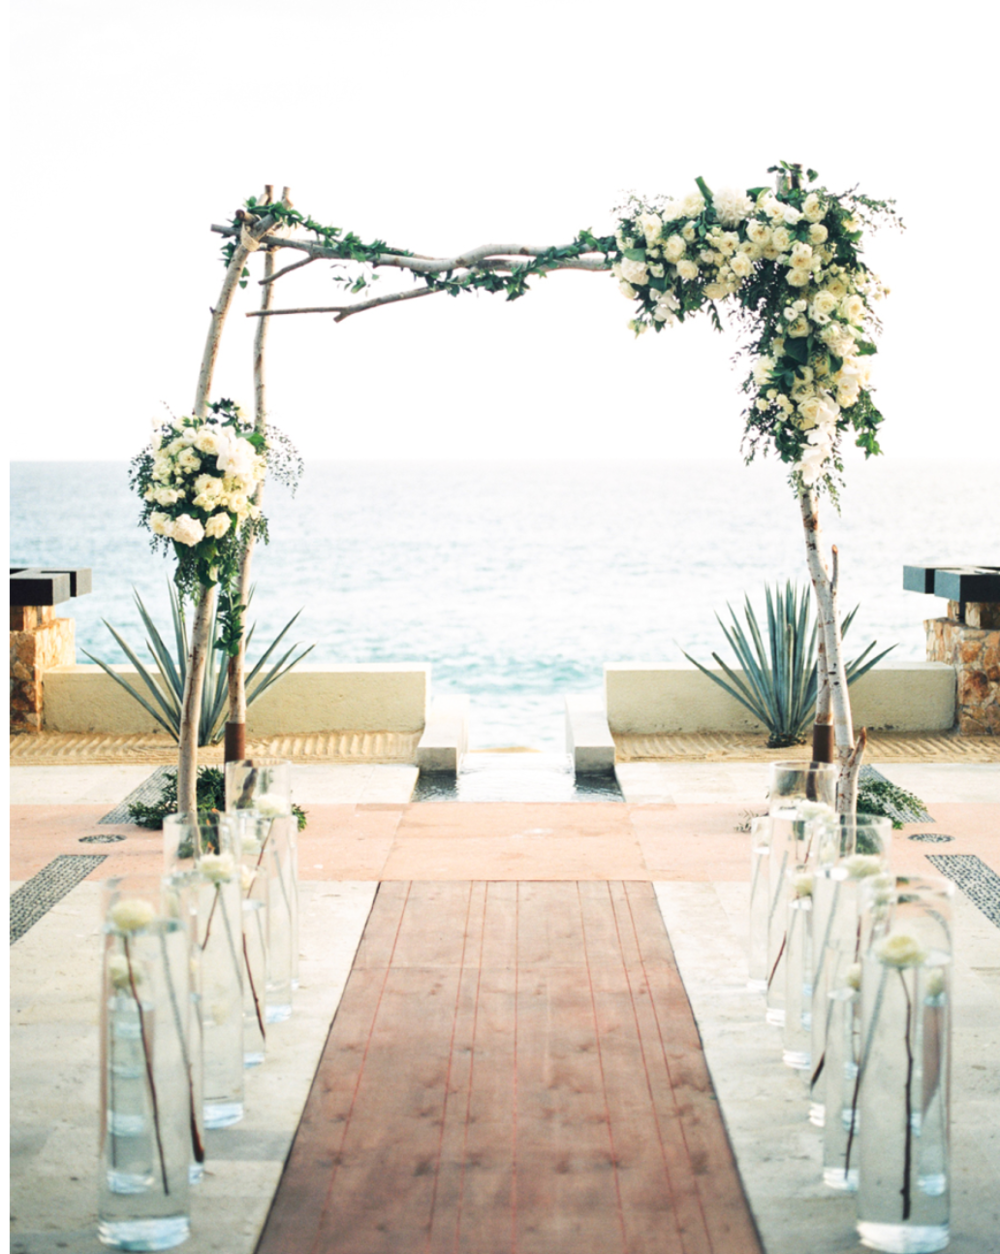 067cabo•mexico•travel•destination•photographer•videographer•outlivecreative•styled•shoot.png